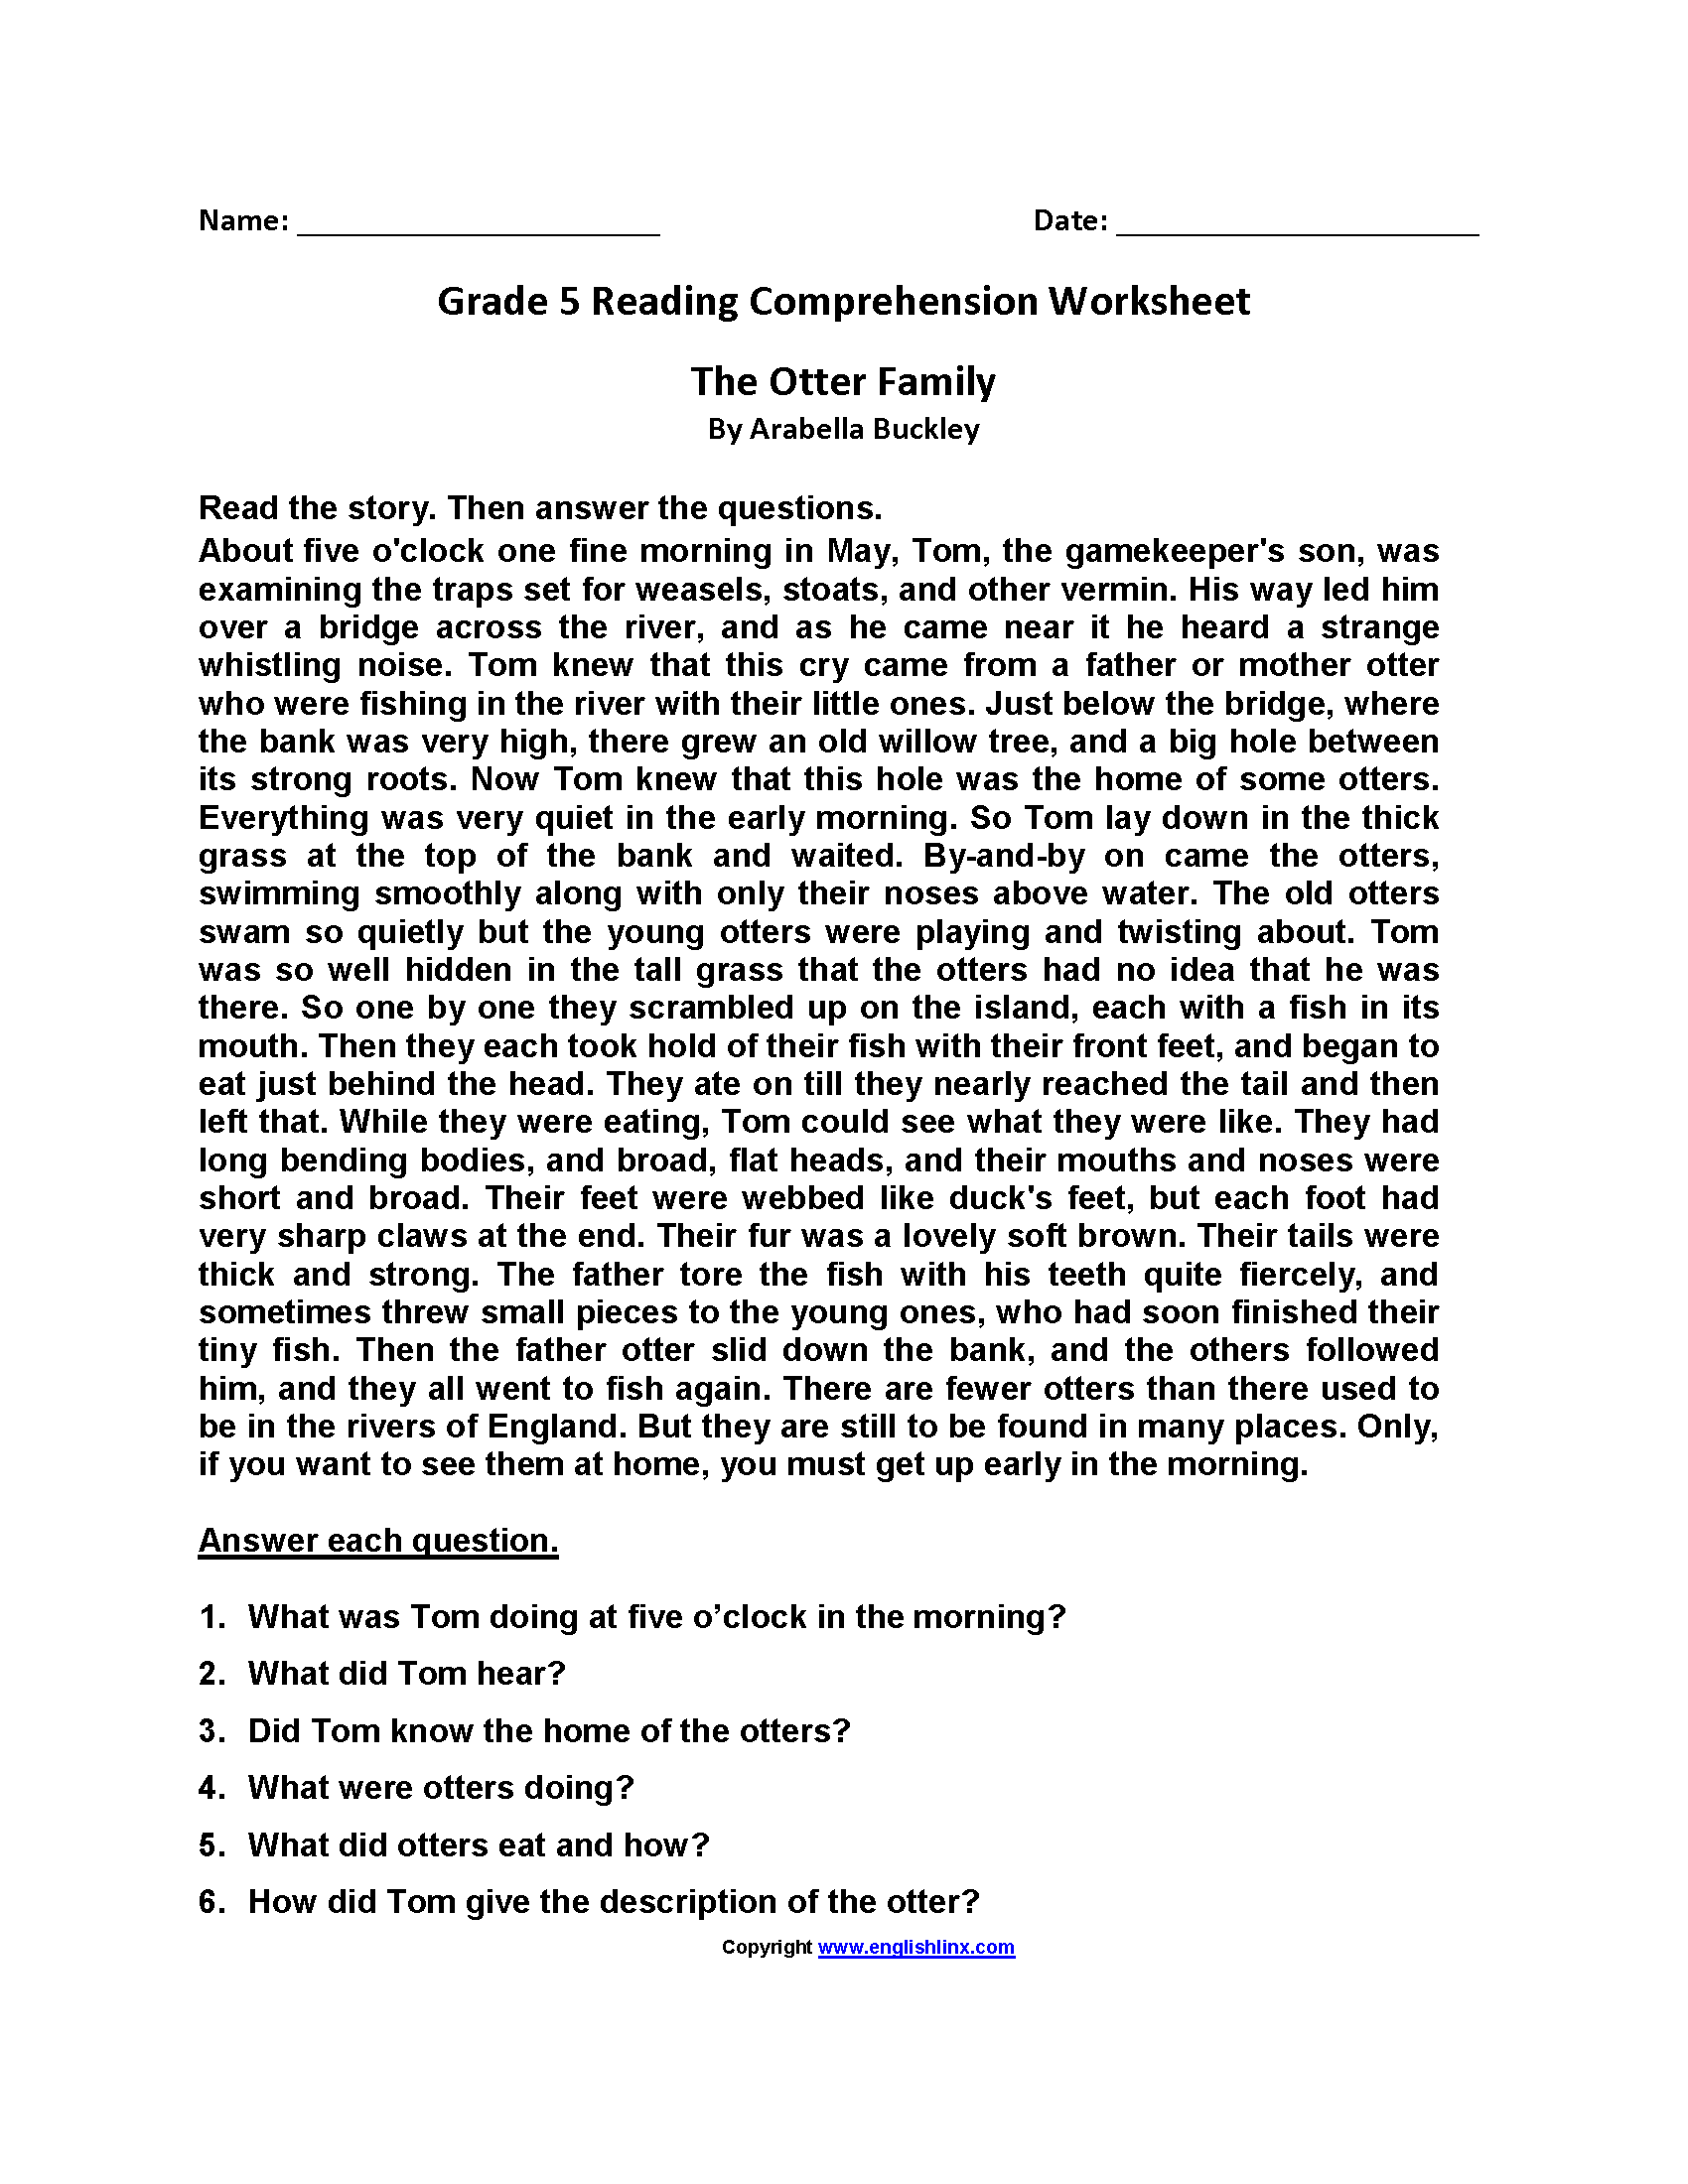 Worksheet Comprehension Worksheets For Grade 5 Worksheet